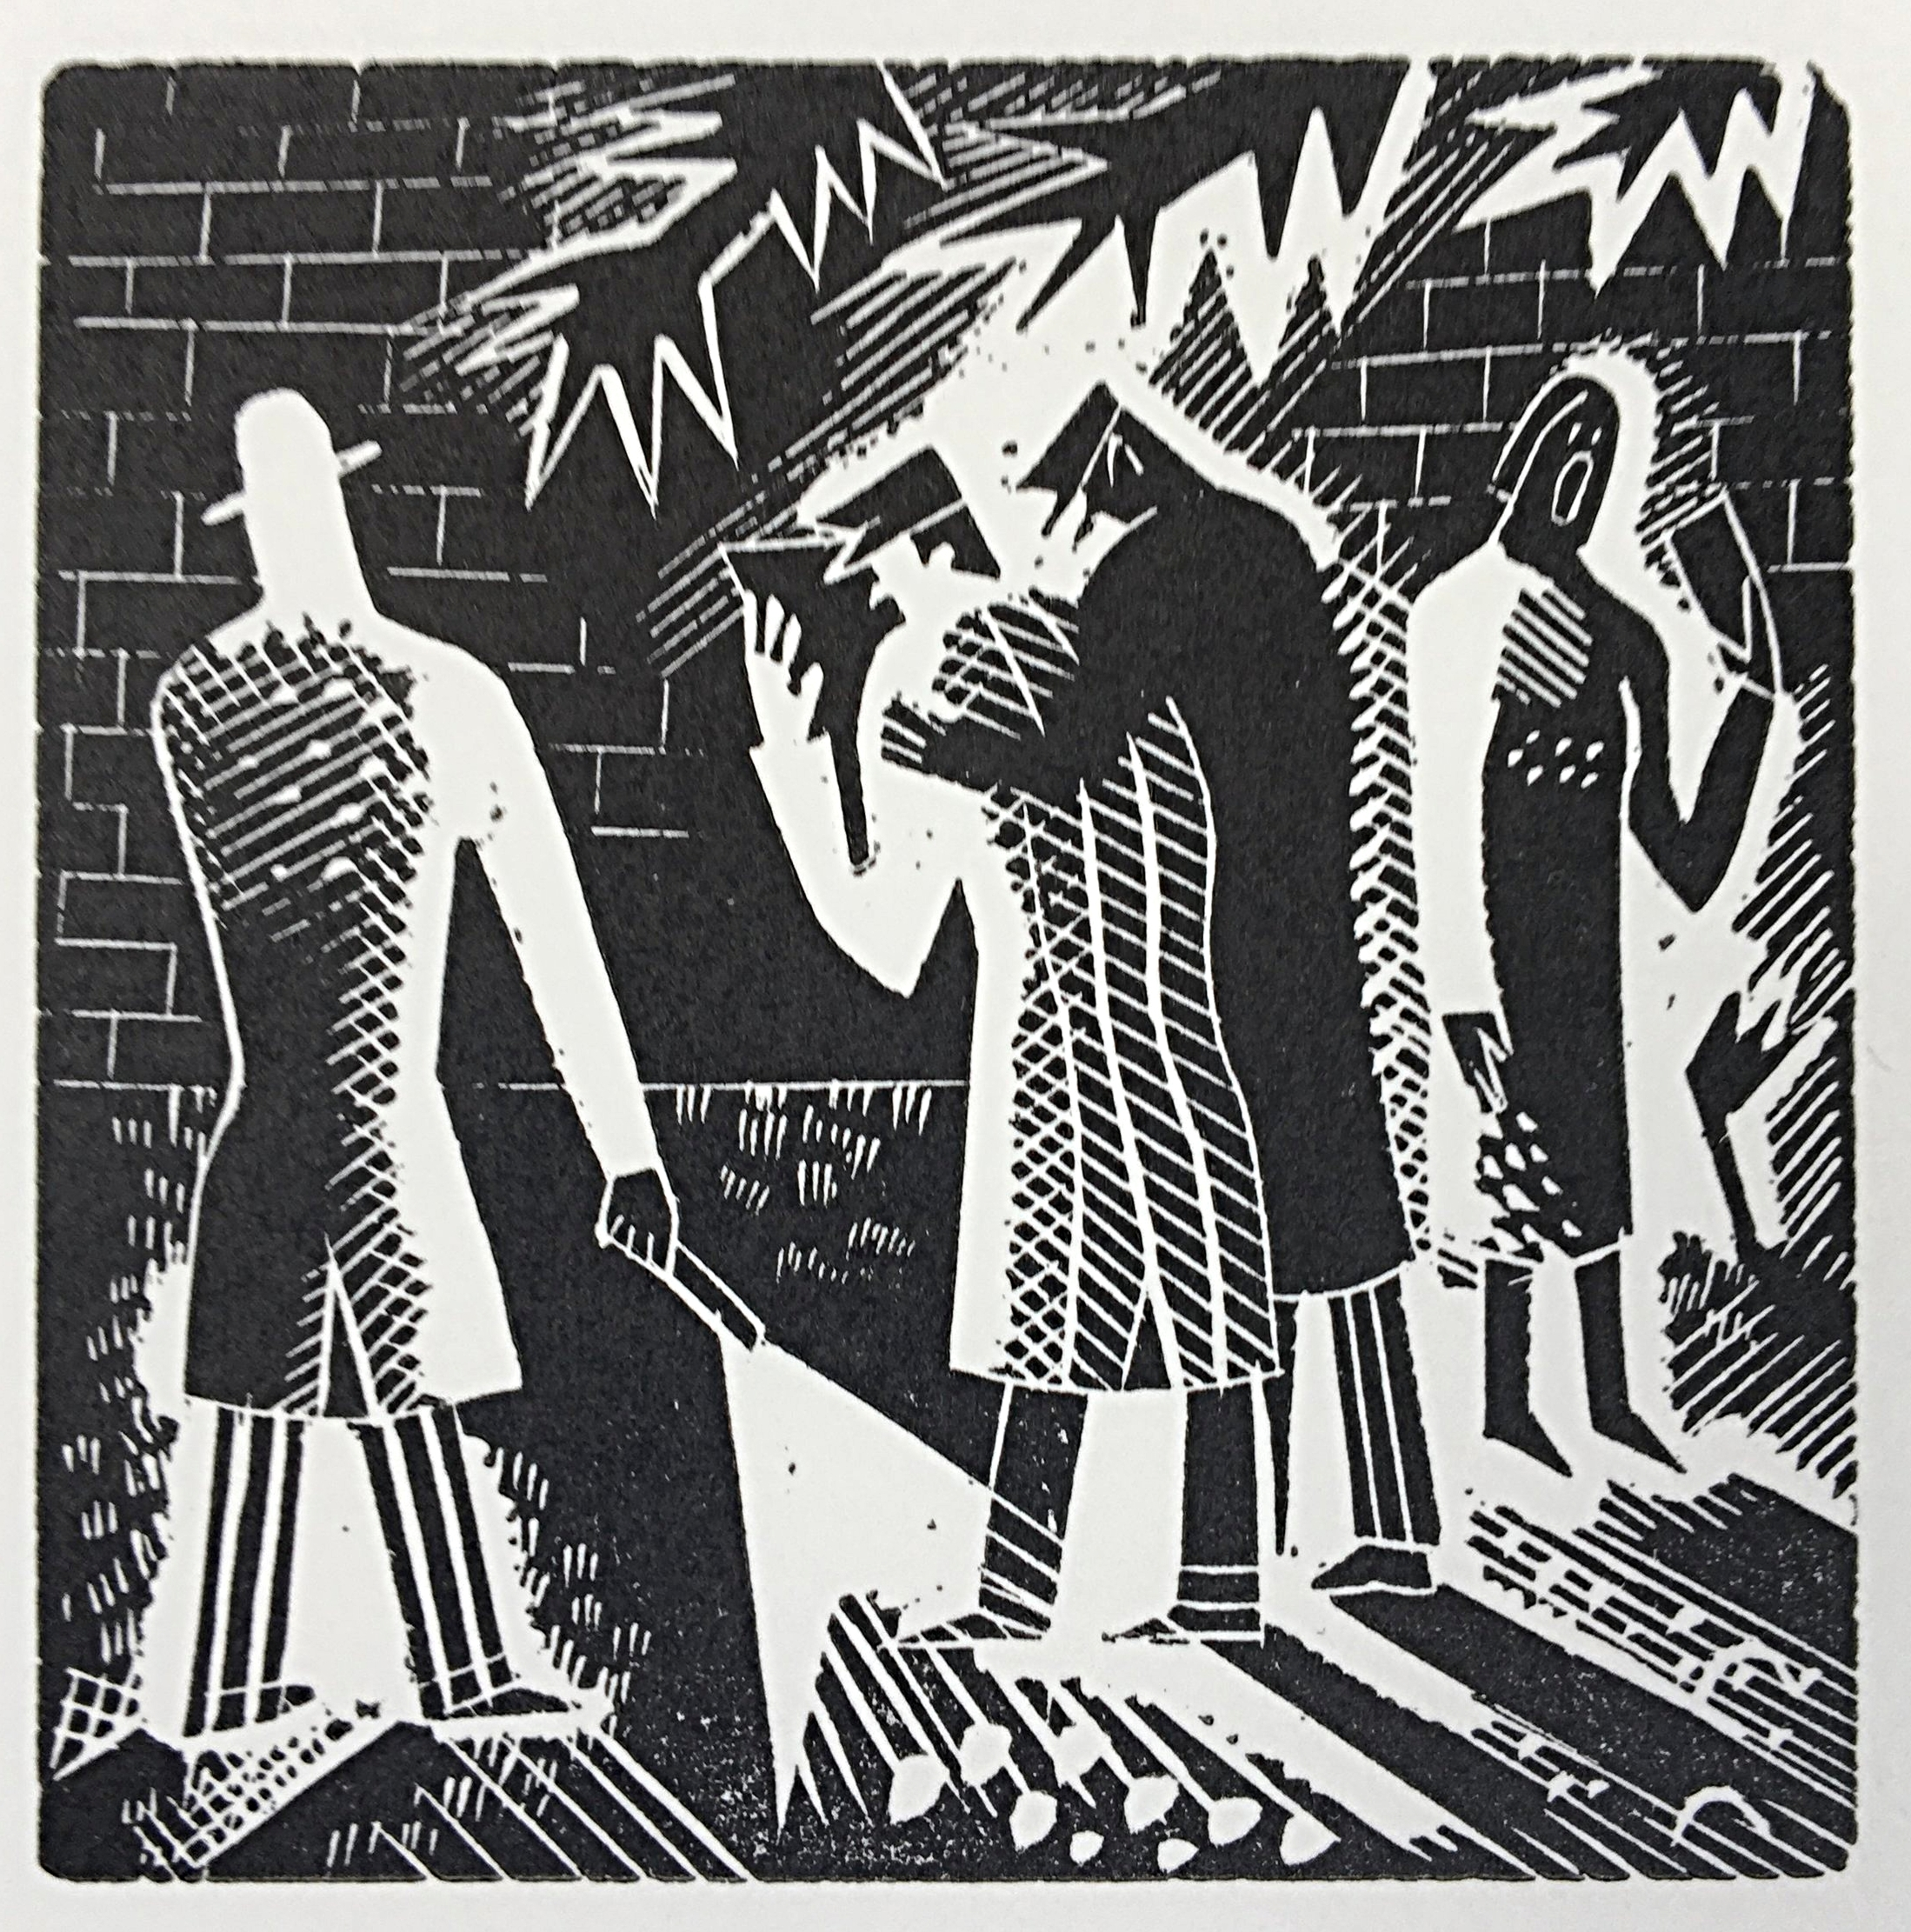 Carol Singers II - Wood engraving 4.2 x 2.97 cmsAn image closely related to the wood-engraving 'Carol Singers I'Cooper's ability to produce fine work on such a tiny scale is all the more remarkable for the fact that her eyesight was terrible. She never took her glasses off, even on her wedding day. As a young girl, bicycling through Frinton, she once rode down a policeman, mistaking him for a bollard.£120